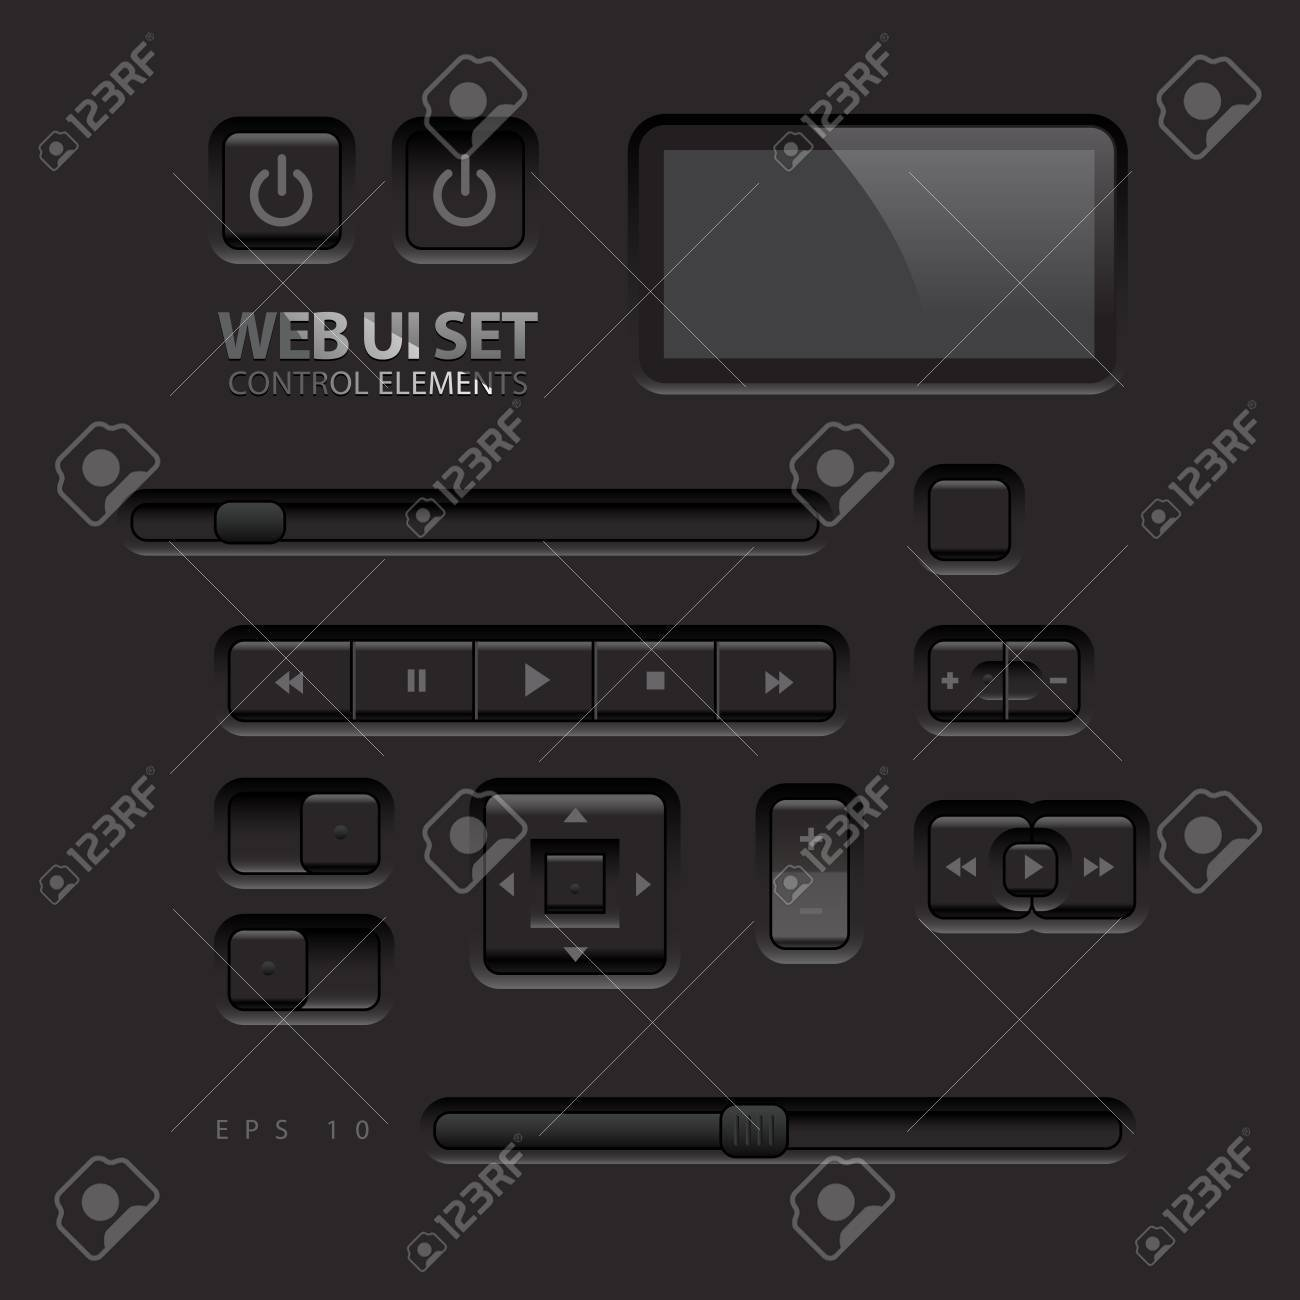 Black Web UI Elements Buttons, Switches, bars, power buttons,